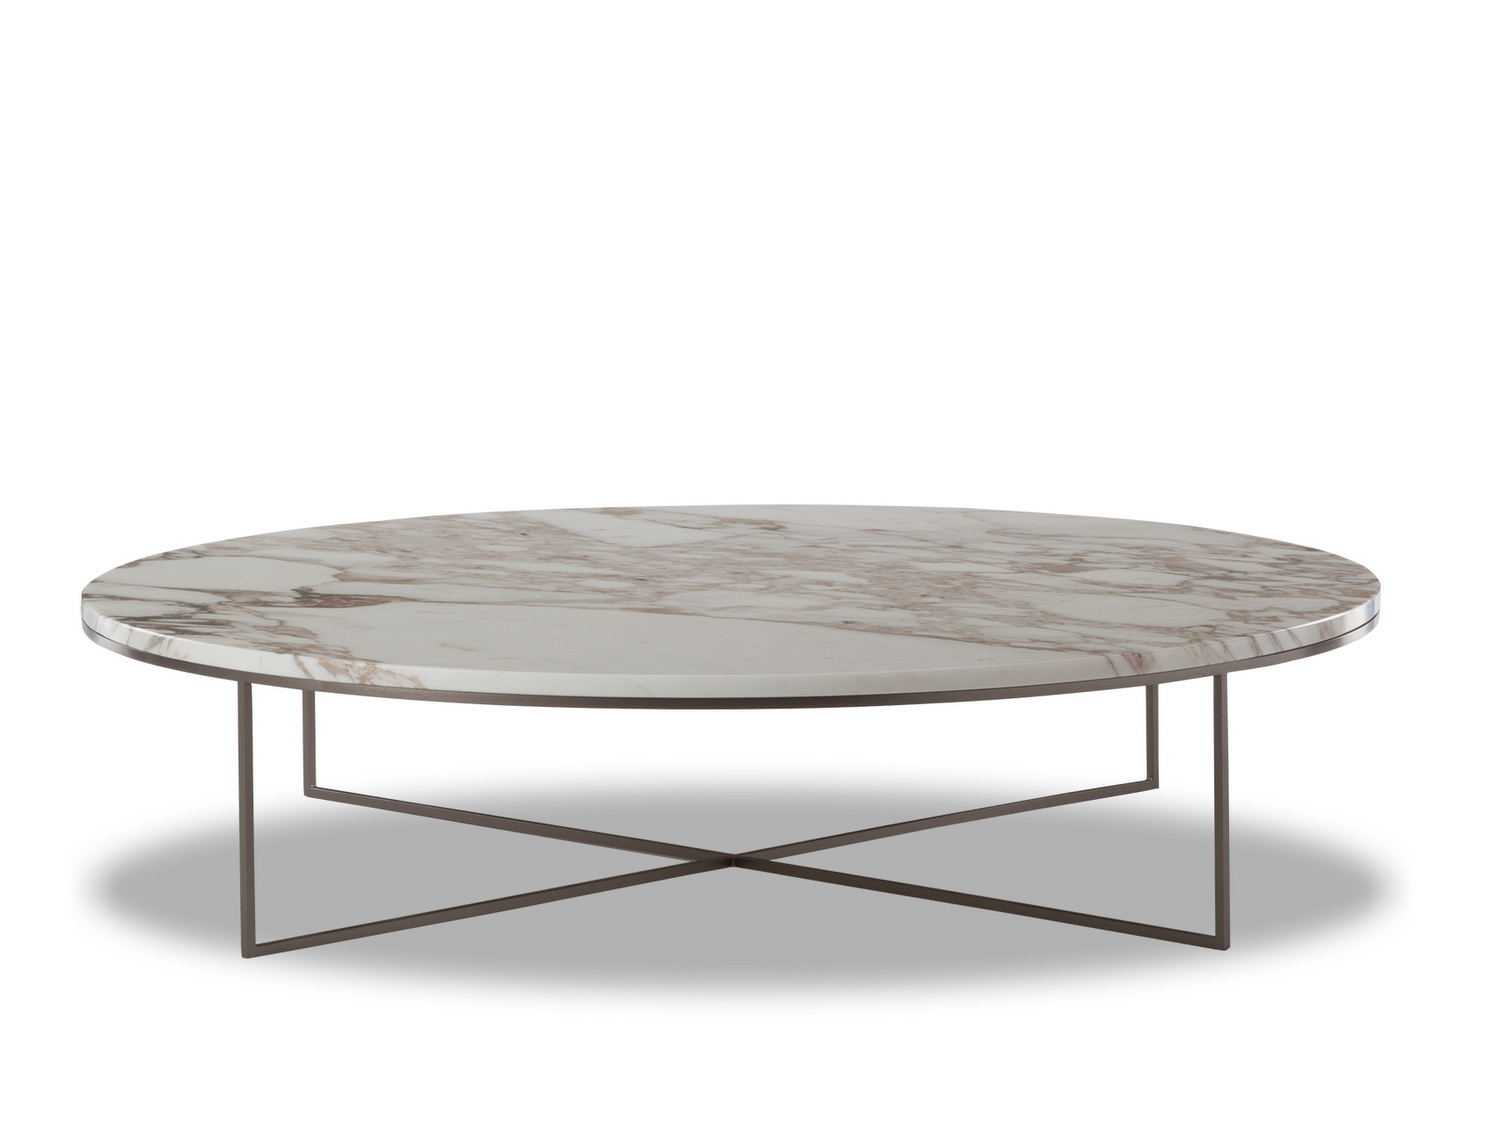 Calder bronze coffee table calder bronze collection by minotti design rodolfo dordoni Bronze coffee tables